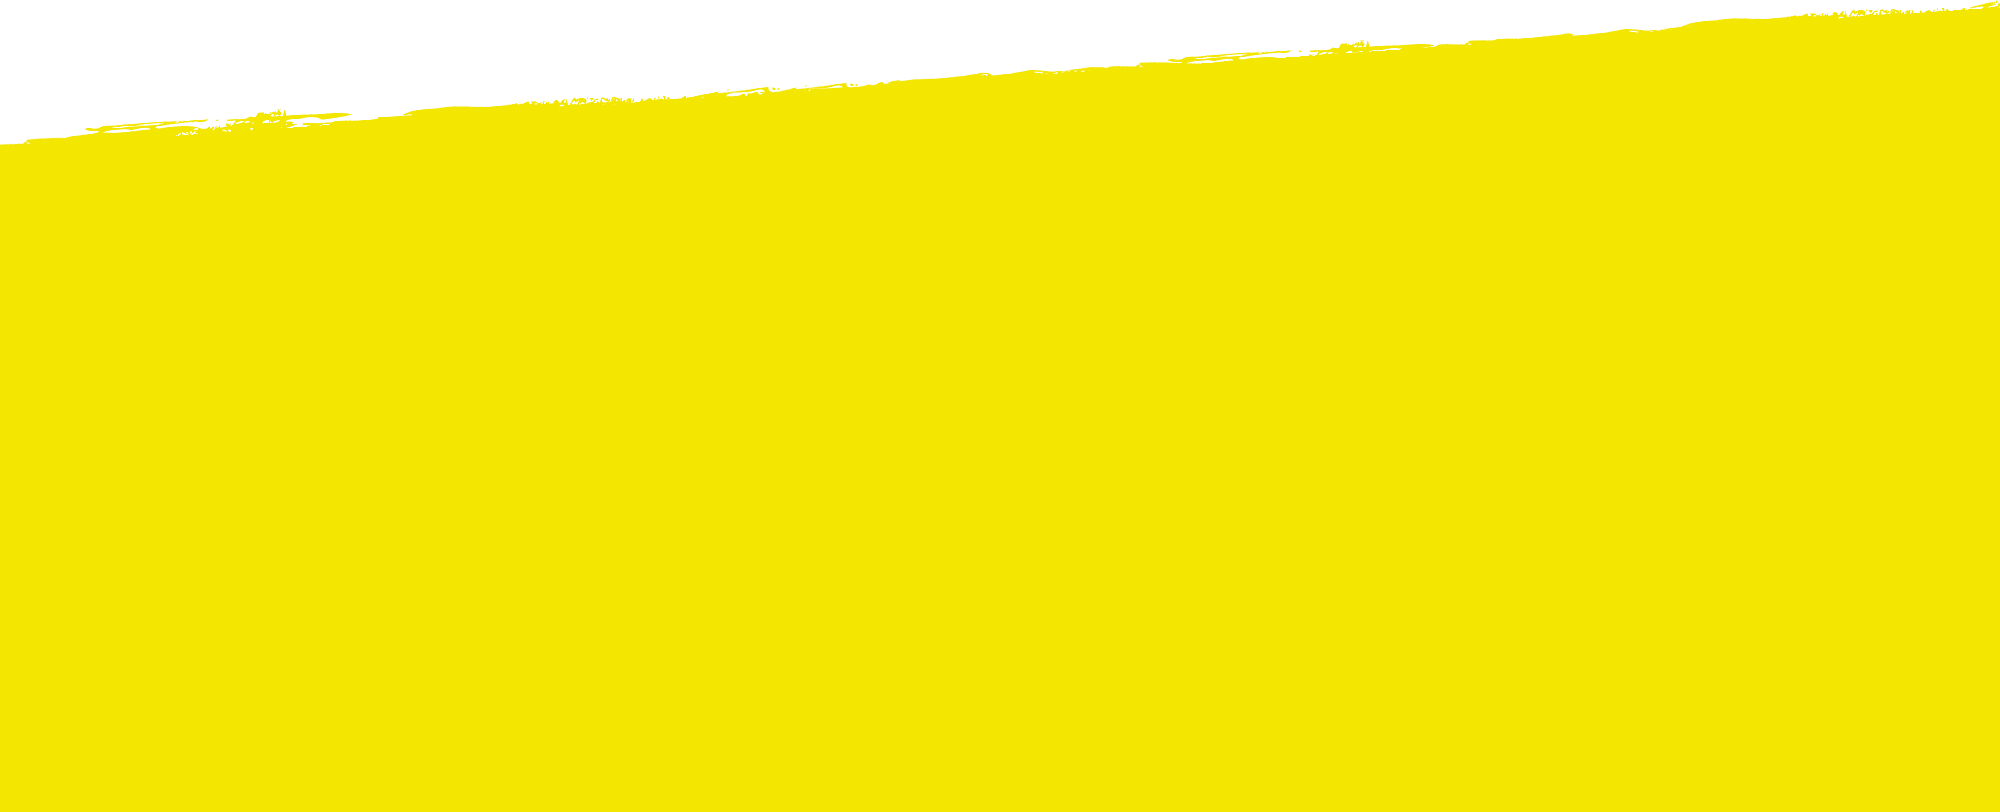 Background - 2000x810.png